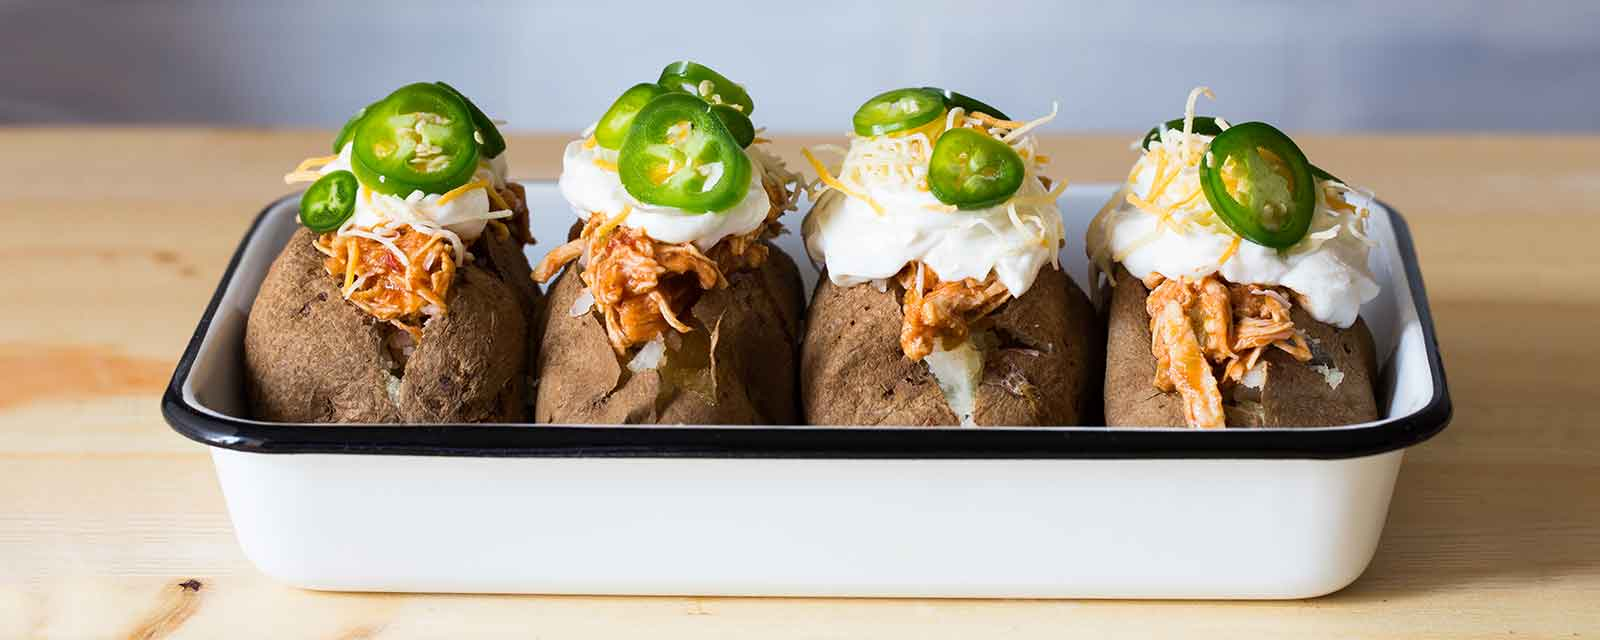 Spicy Ranch Pulled Chicken Loaded Baked Potatoes